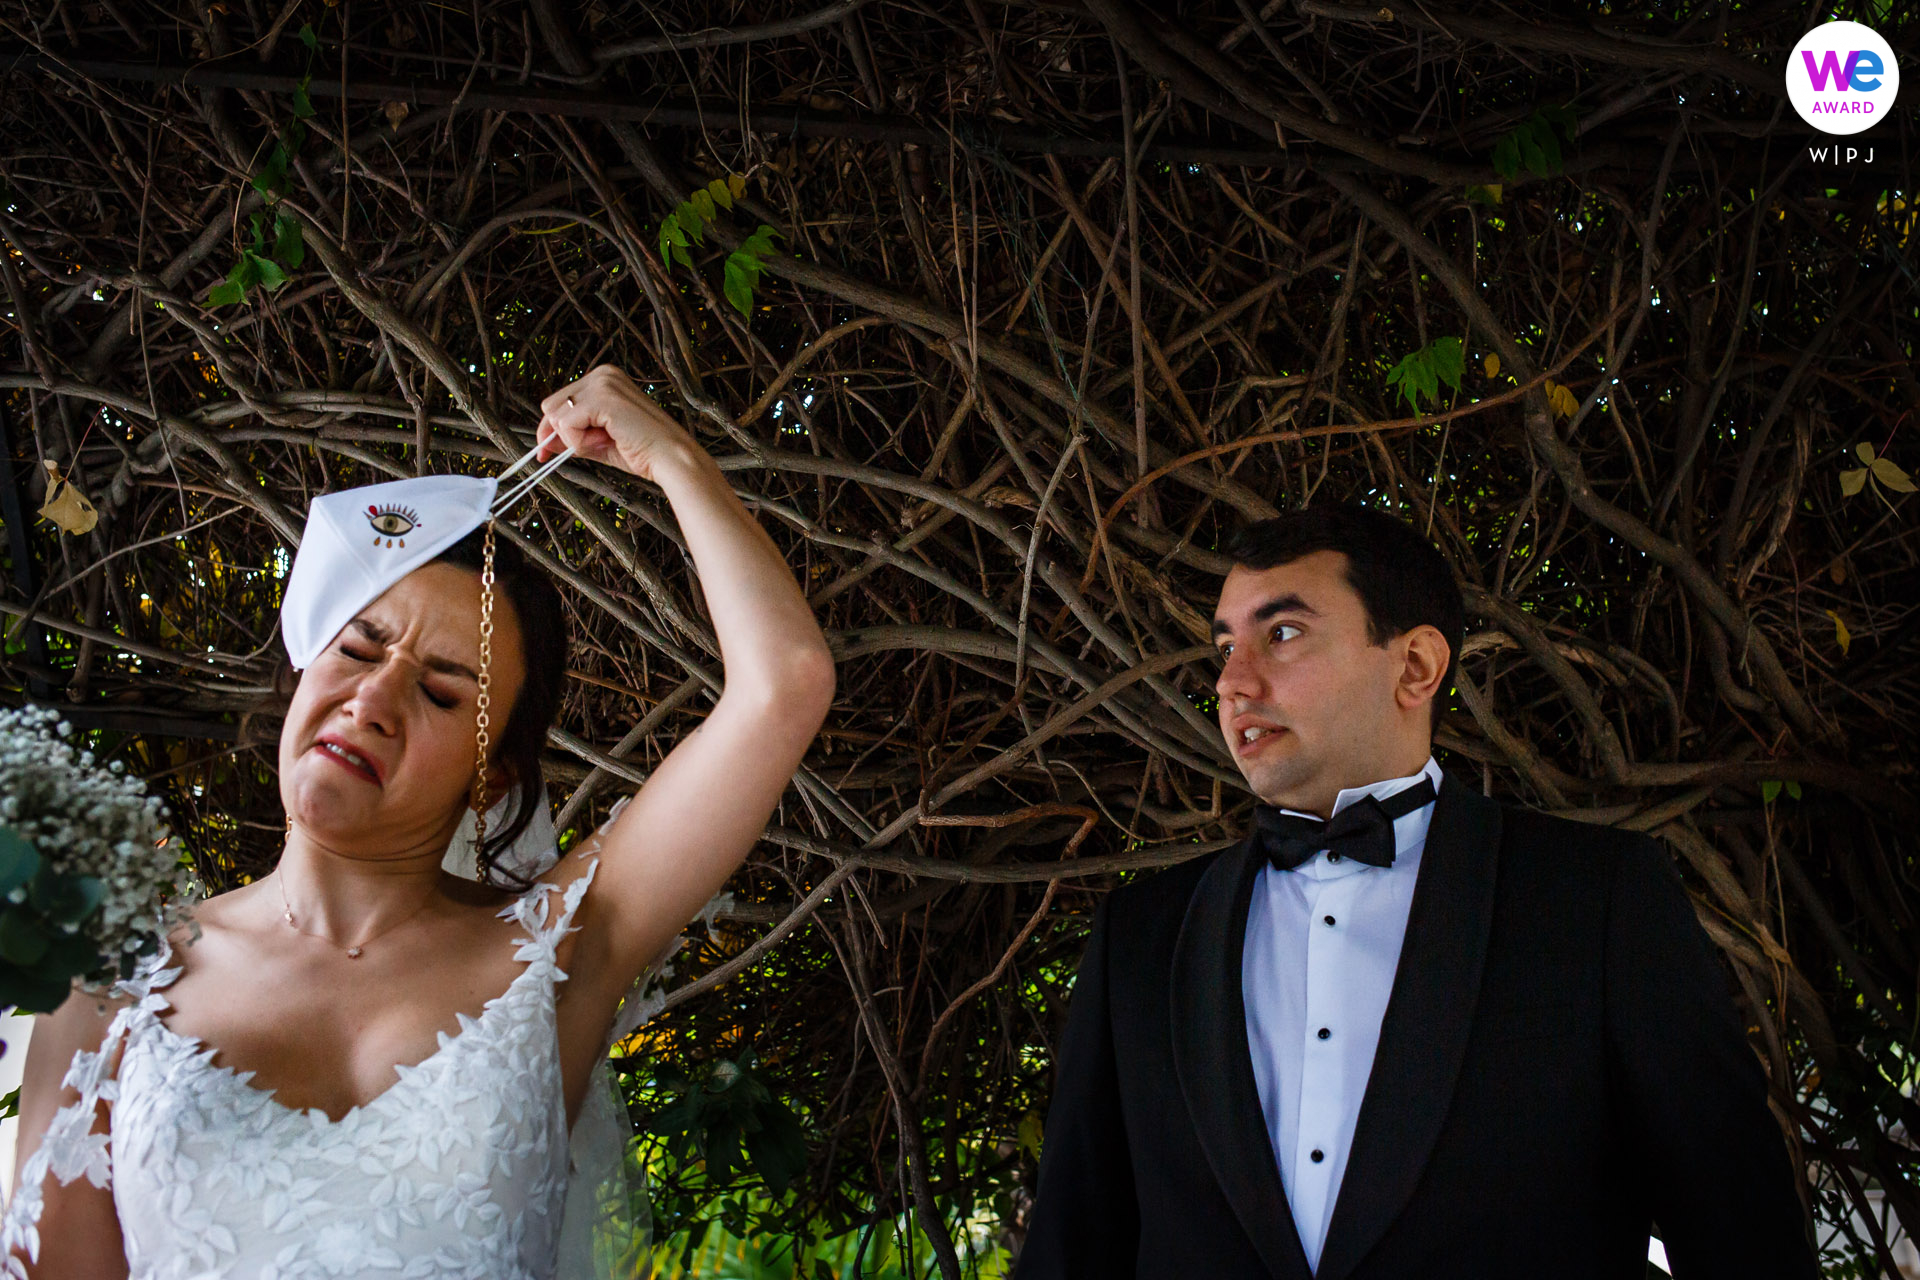 Sisli Evlendirme Dairesi, Istanbul, COVID Wedding Image | a little outdoor shoot in front of the hall